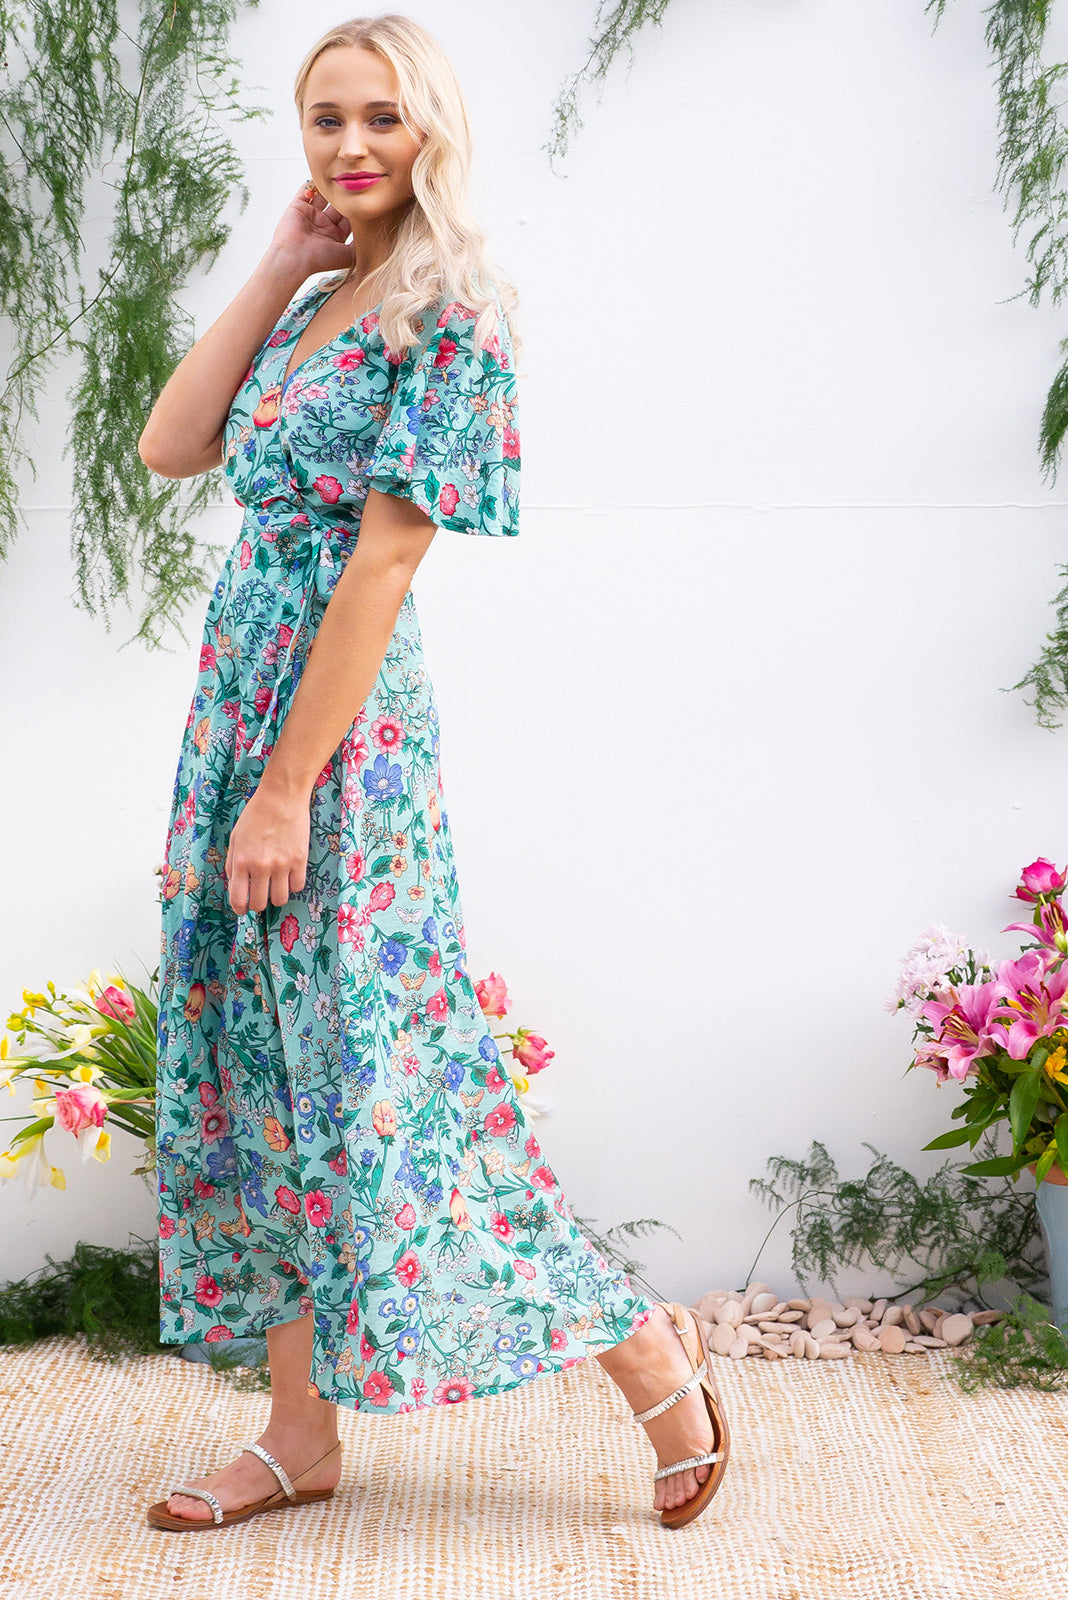 Petal Minty Meadow Cotton Maxi Wrap Dress features a strong aquamarine base with a floral bohemian print on a soft woven rayon and has a petal sleeve and wrap around shape